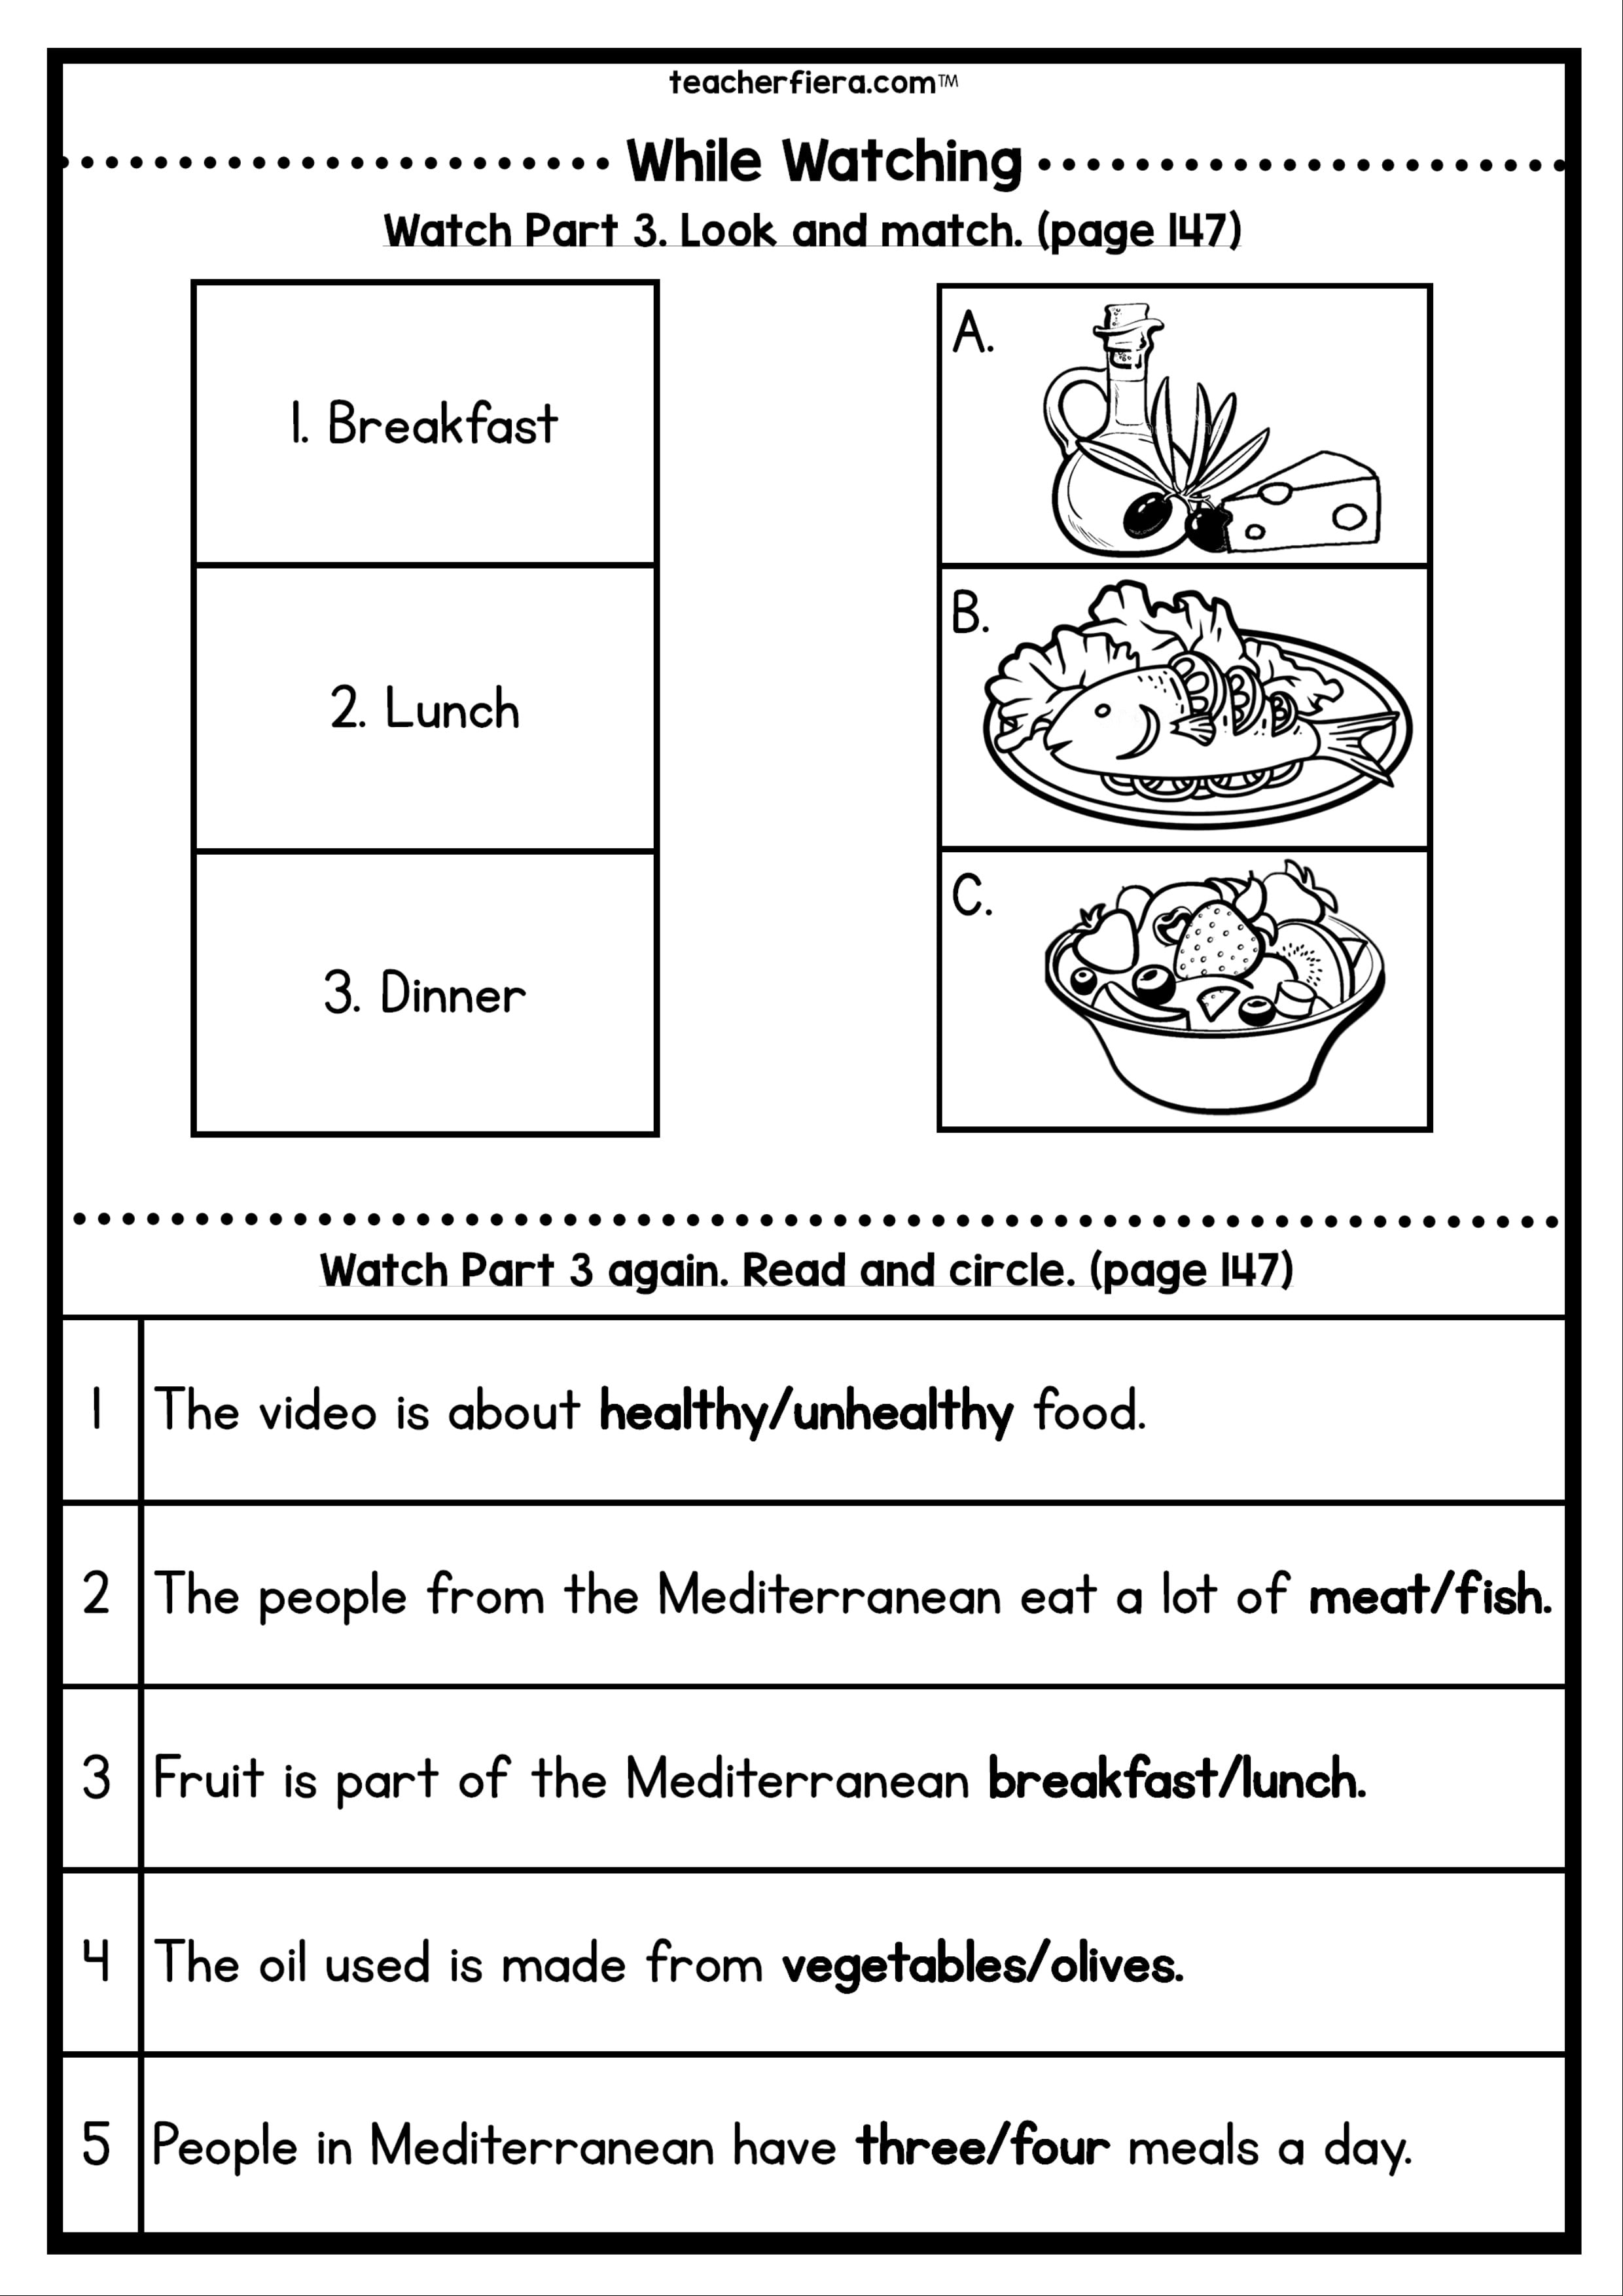 Year 4 Supporting Materials Based On The Main